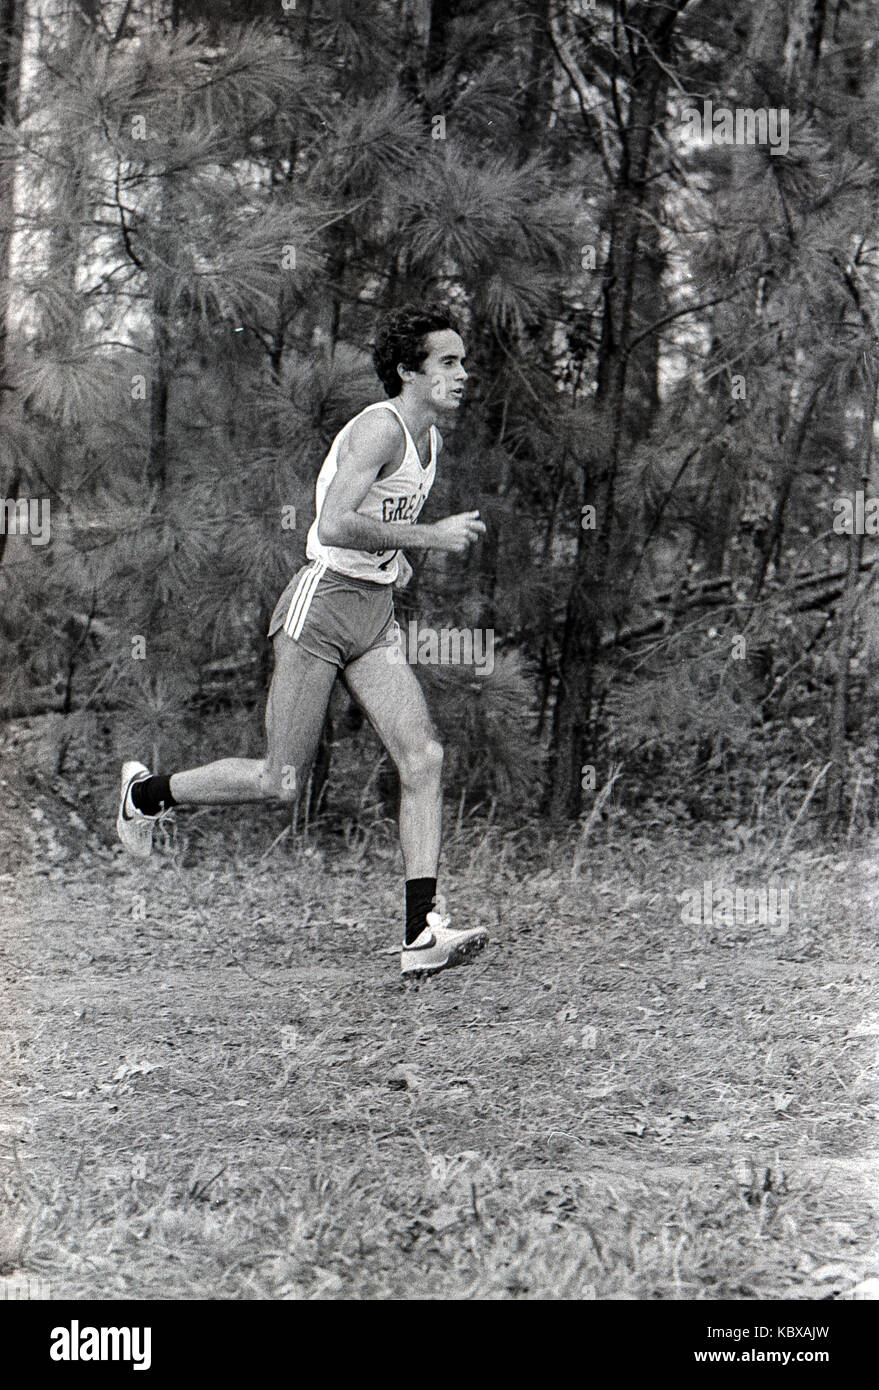 Alberto Salazar competing in the 1979 AAU Cross Country Championships. - Stock Image